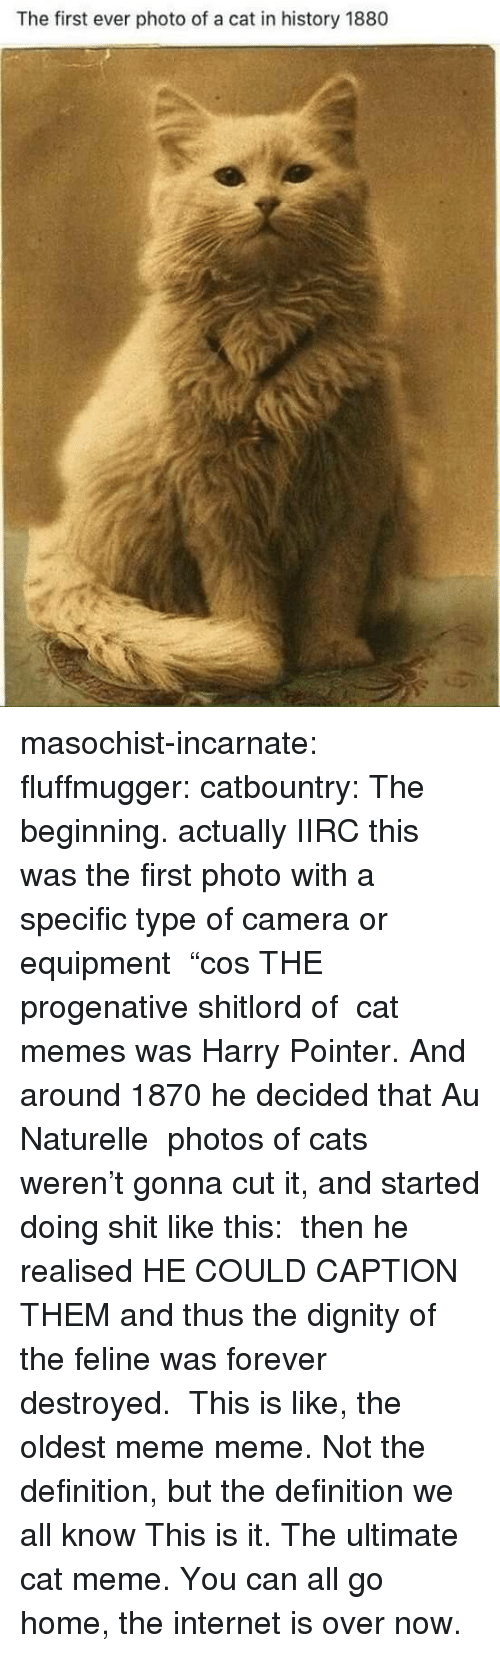 "Cats, Internet, and Meme: The first ever photo of a cat in history 1880 masochist-incarnate:  fluffmugger:  catbountry: The beginning. actually IIRC this was the first photo with a specific type of camera or equipment  ""cos THE progenative shitlord of  cat memes was Harry Pointer. And around 1870 he decided that Au Naturelle  photos of cats weren't gonna cut it, and started doing shit like this:  then he realised HE COULD CAPTION THEM and thus the dignity of the feline was forever destroyed.    This is like, the oldest meme meme. Not the definition, but the definition we all know   This is it. The ultimate cat meme. You can all go home, the internet is over now."